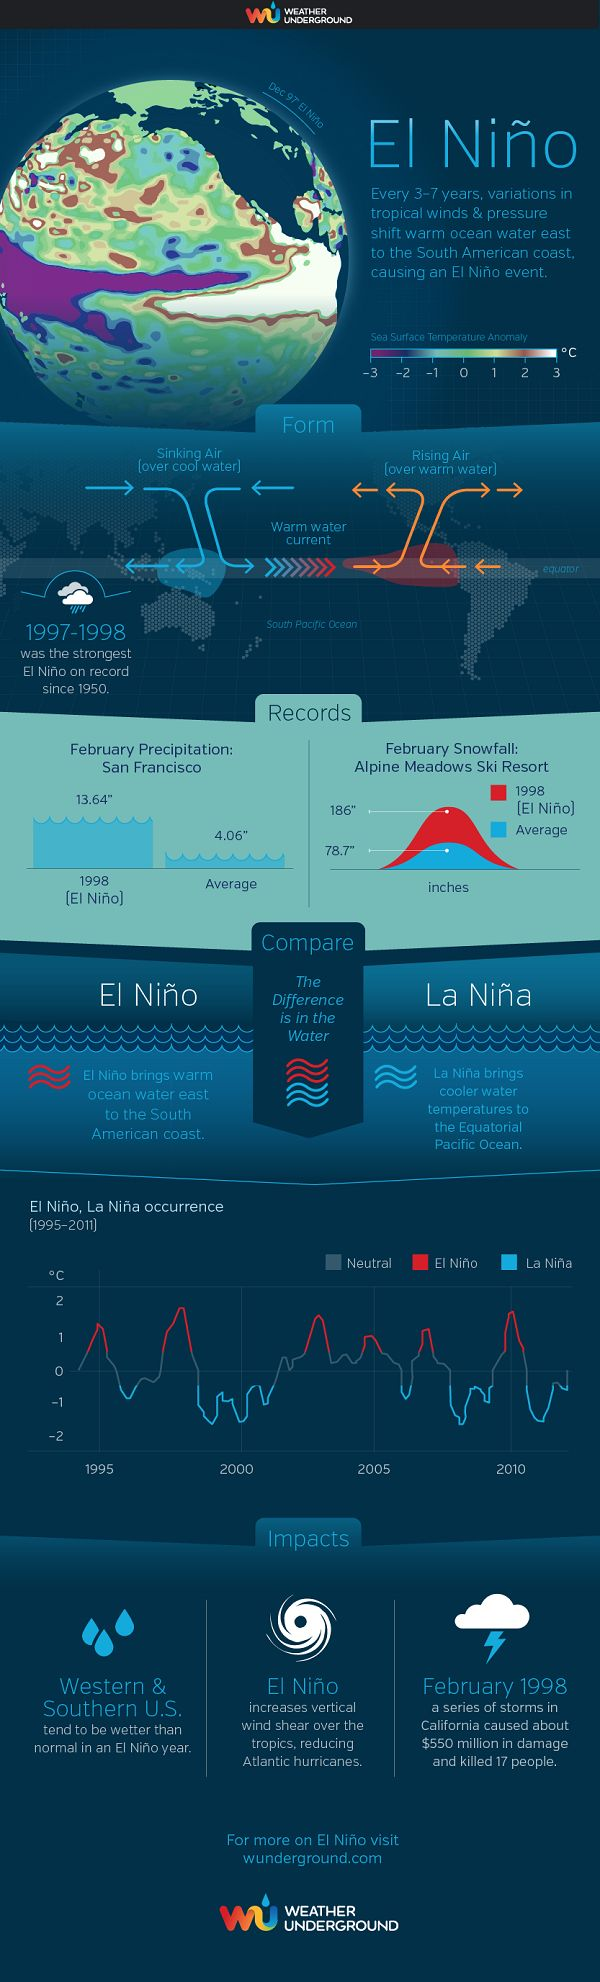 The difference between El Nino and La Nina